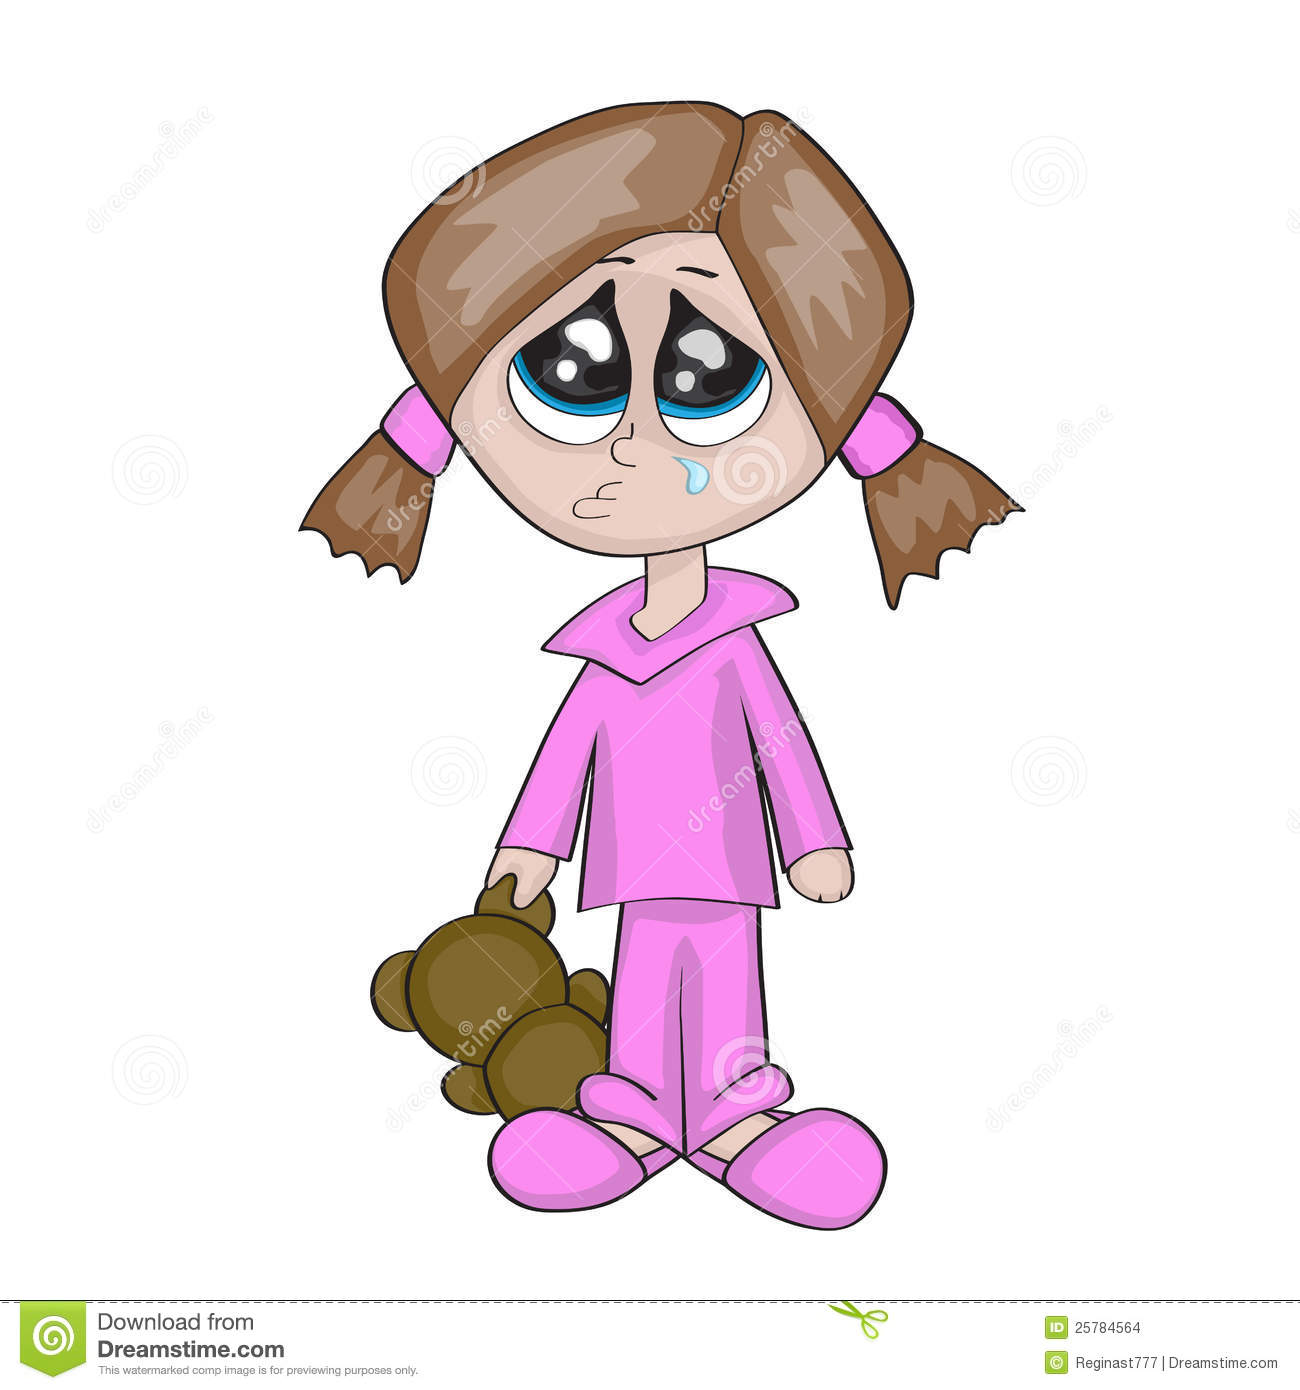 Sad Girl Cartoon - Only Good Pictures